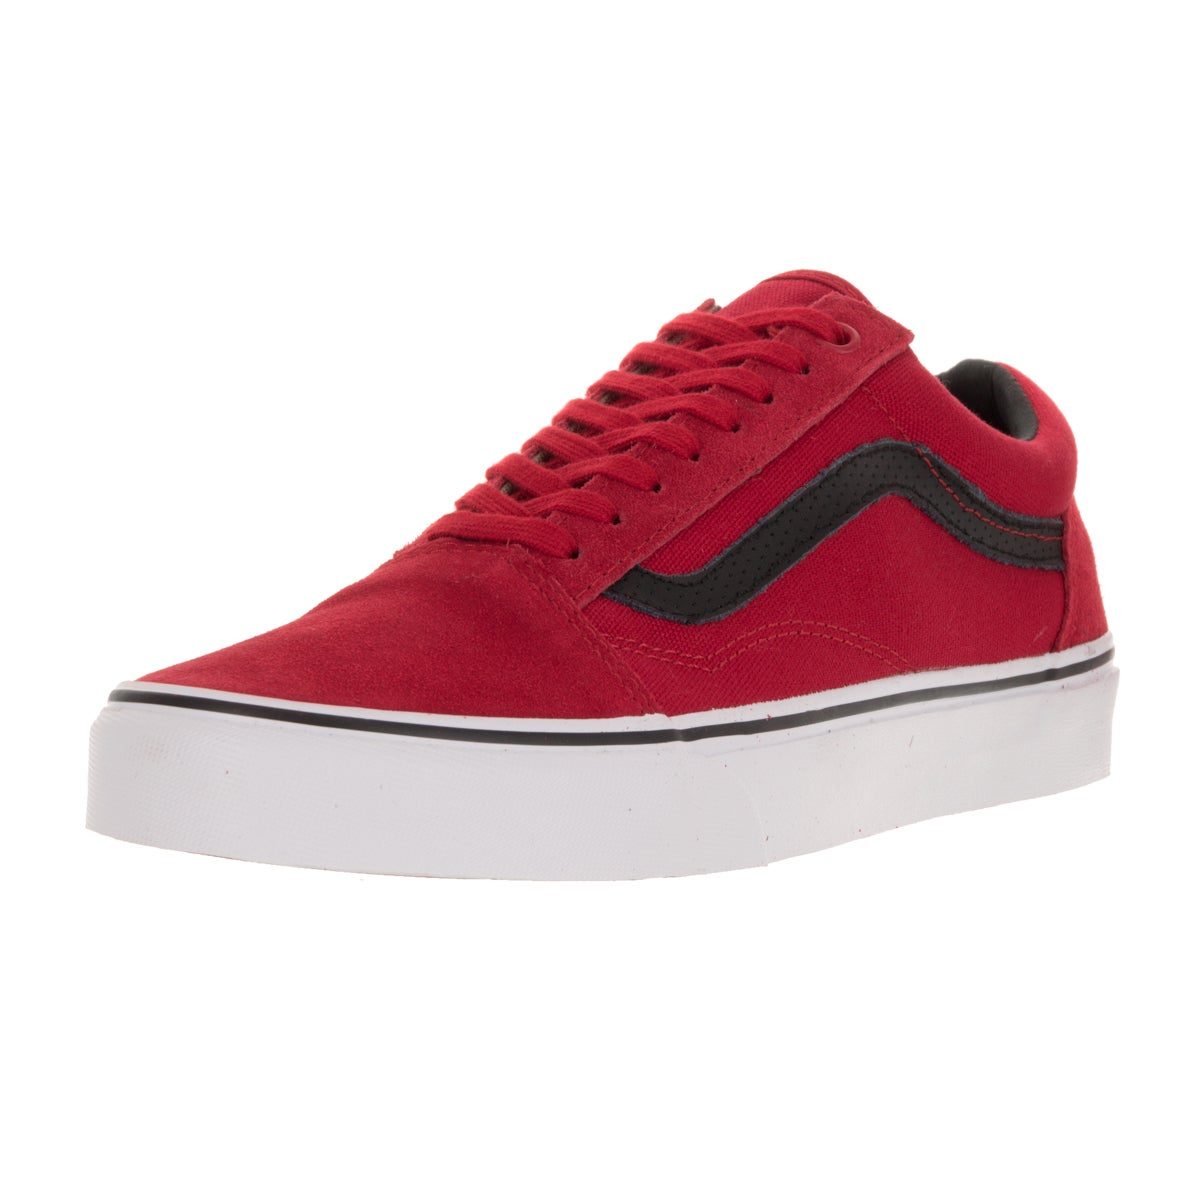 541d1a85c3b Shop Vans Unisex Old Skool (CandP) Racing Red Black Skate Shoe - Free  Shipping Today - Overstock - 13394980